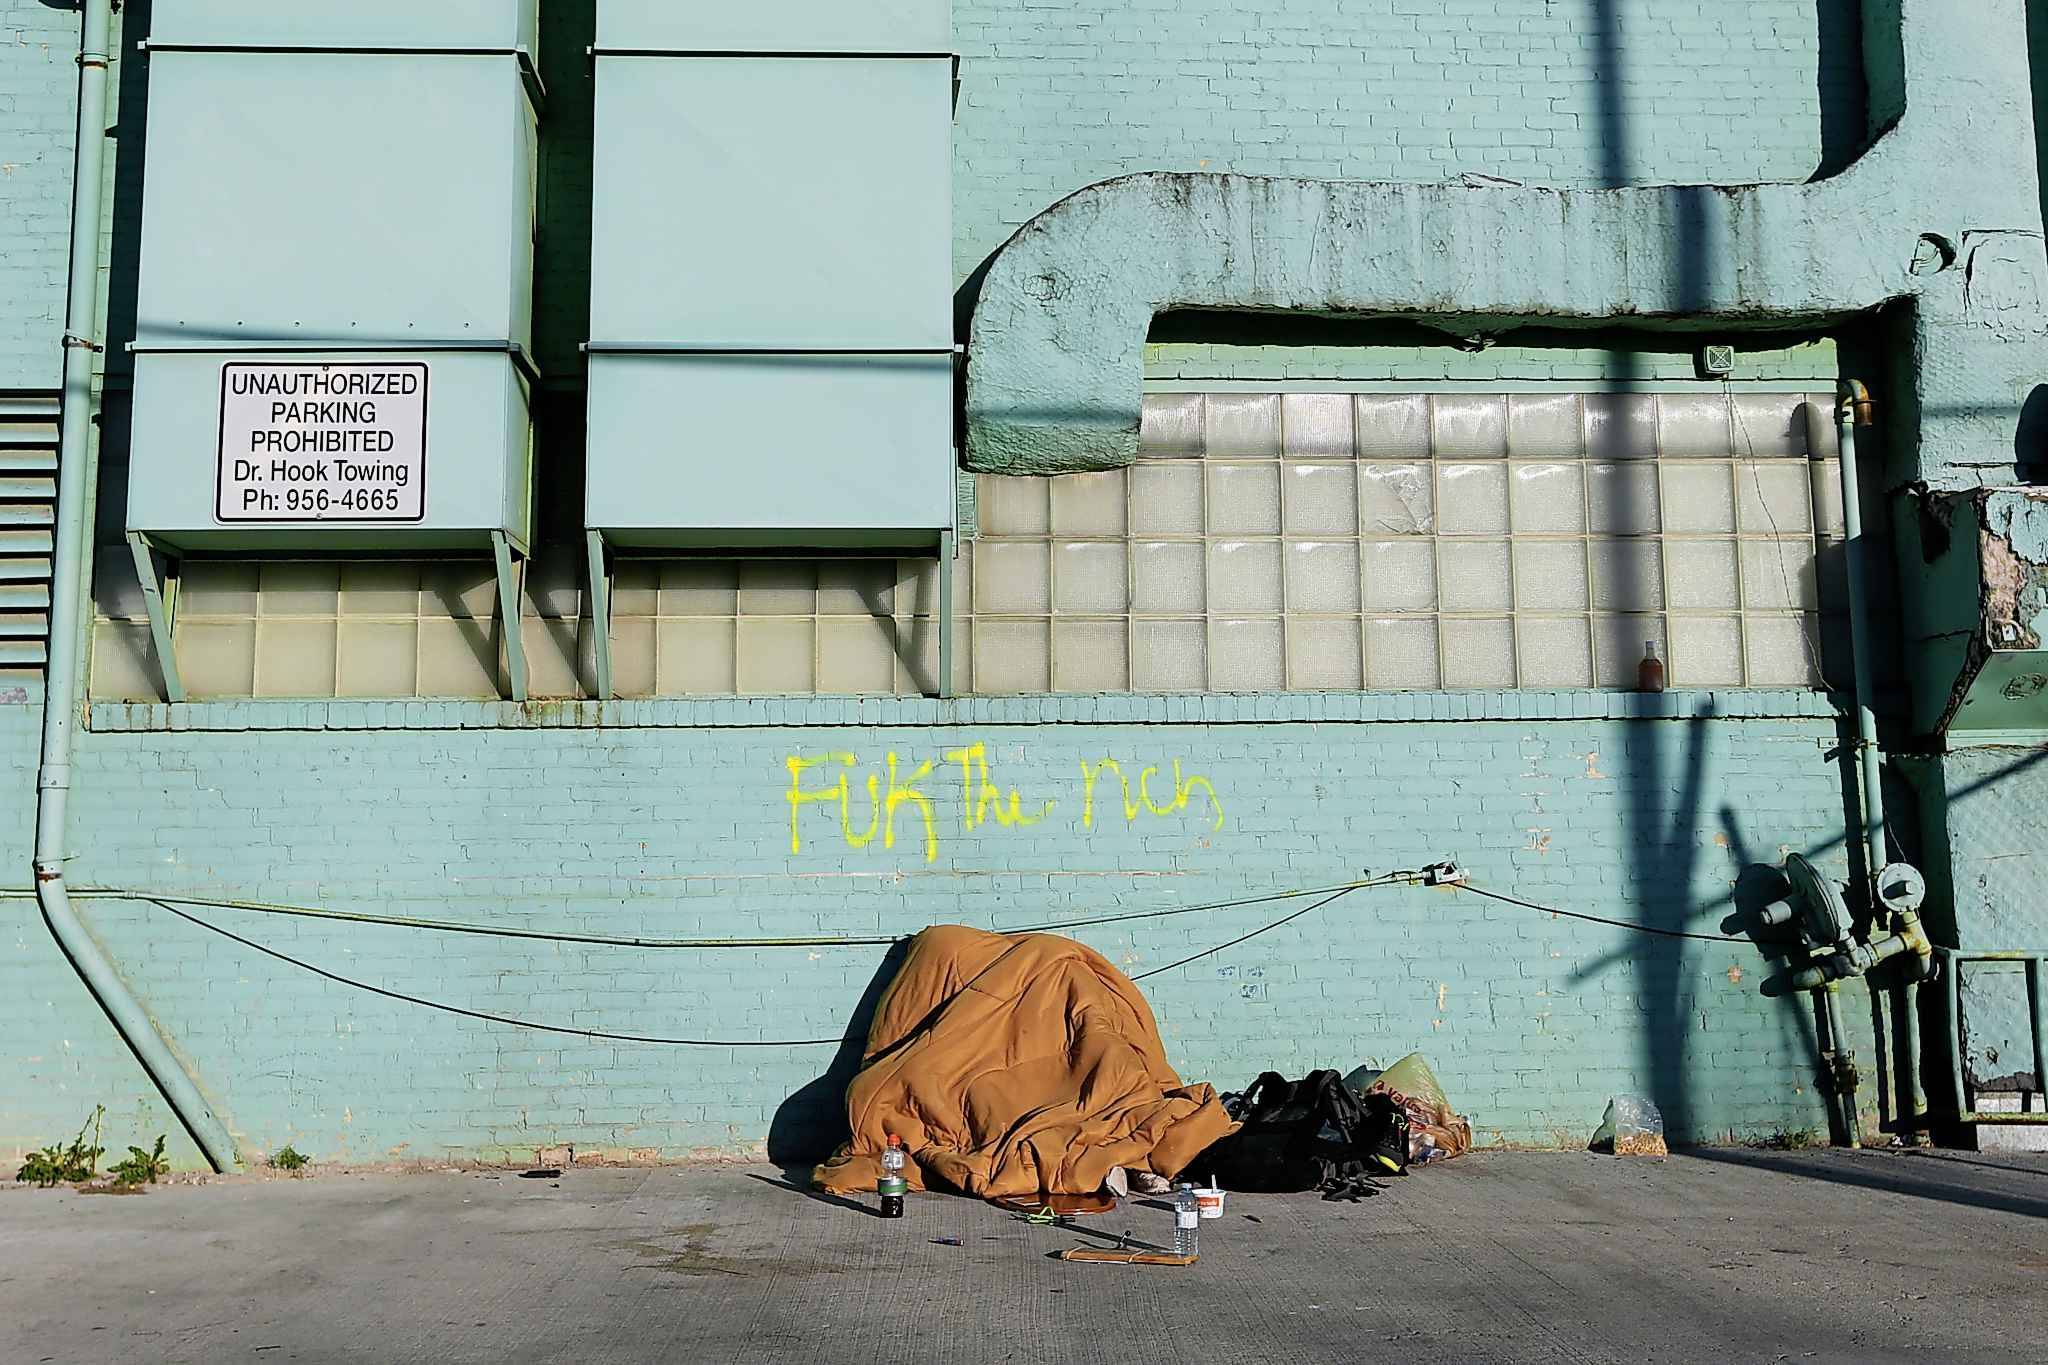 A woman sleeps under a blanket in a backlane in Winnipeg. The shelters are often little more than propped-up tarps providing minimal protection from the elements.